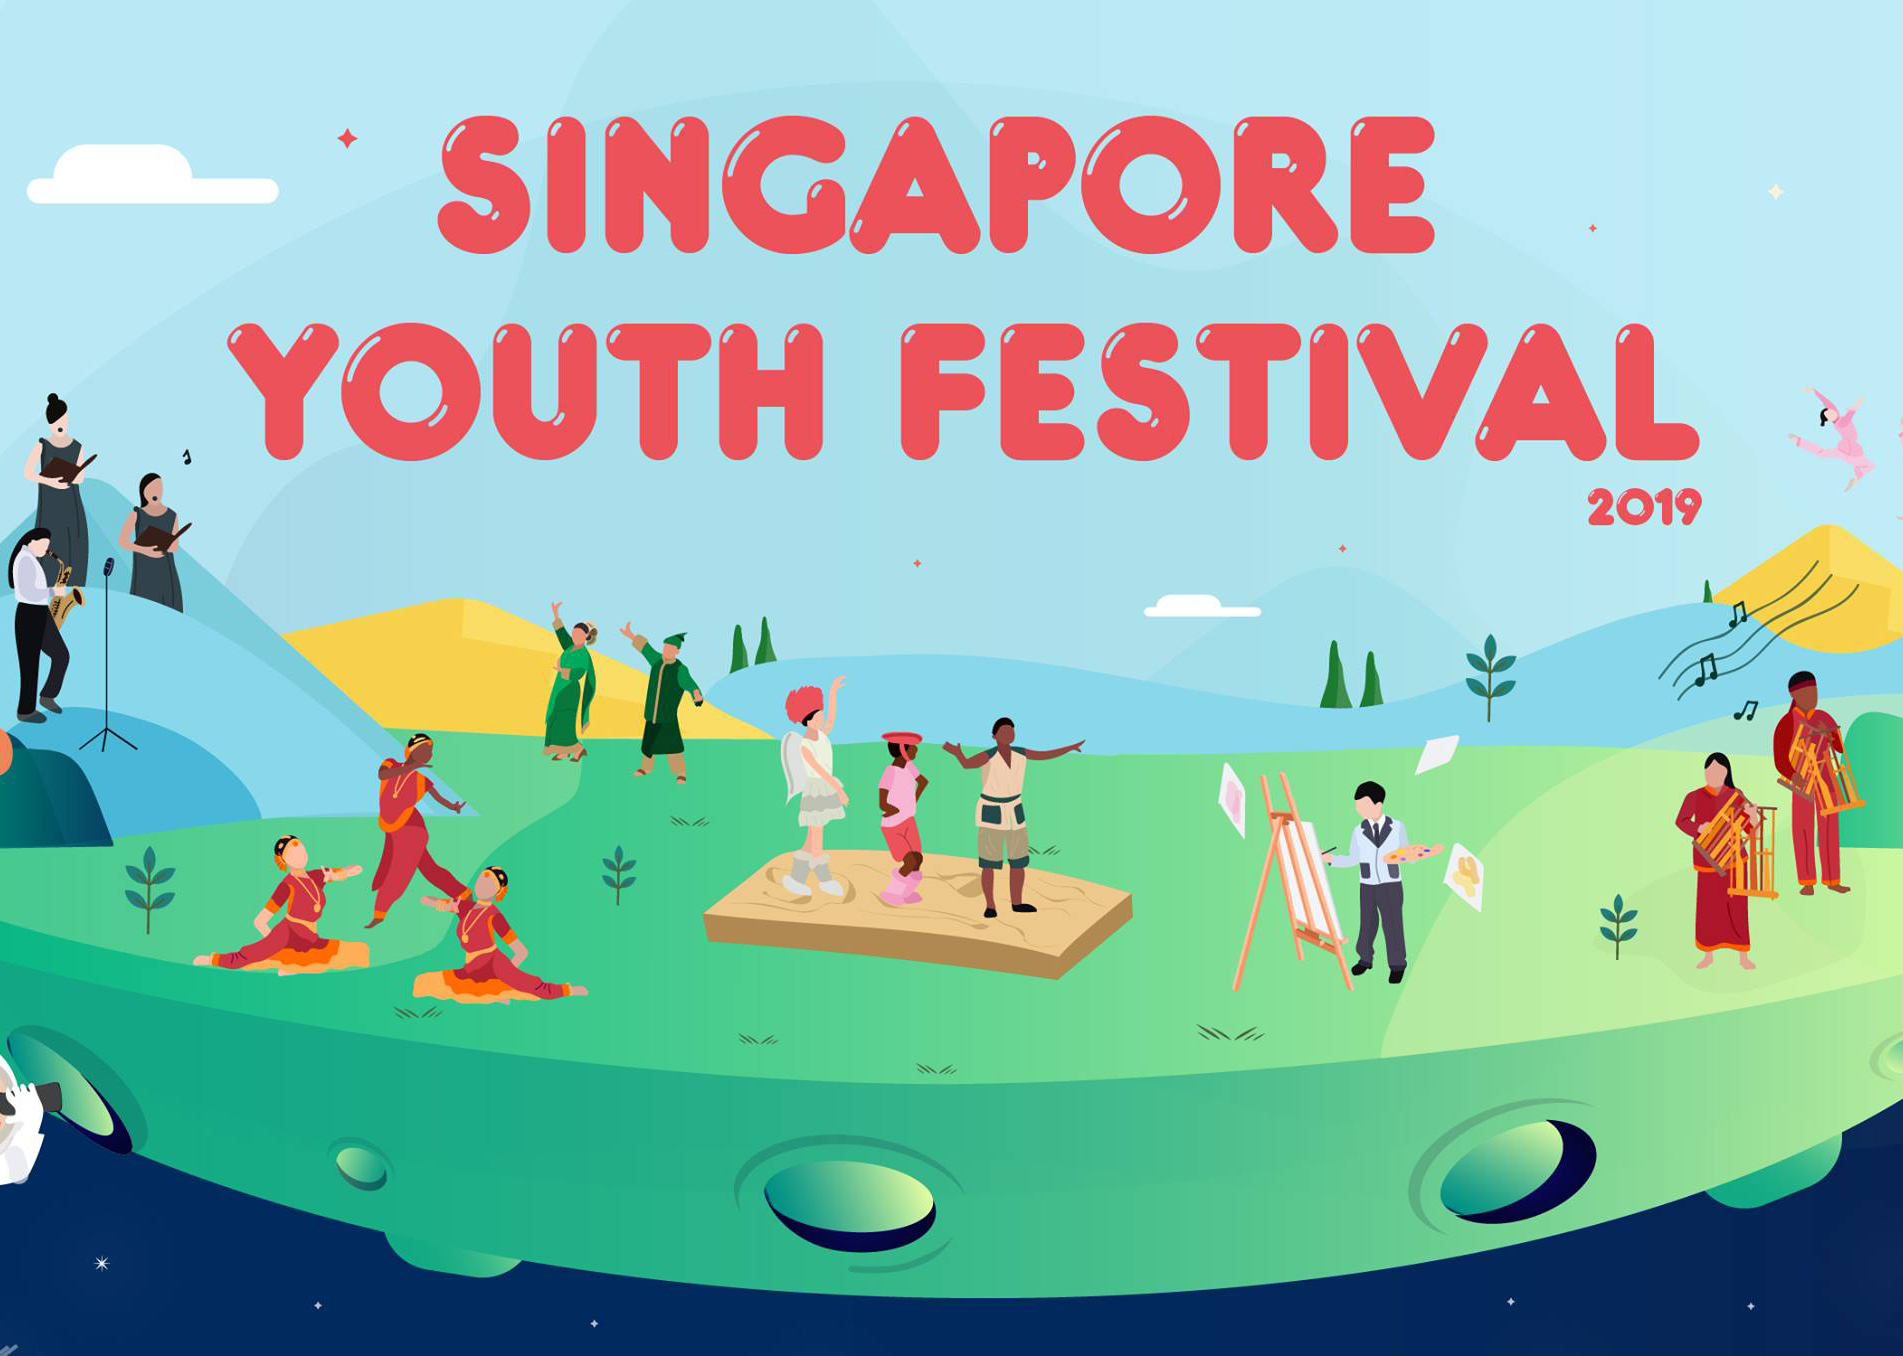 9 Family-friendly activities at the Singapore Youth Festival